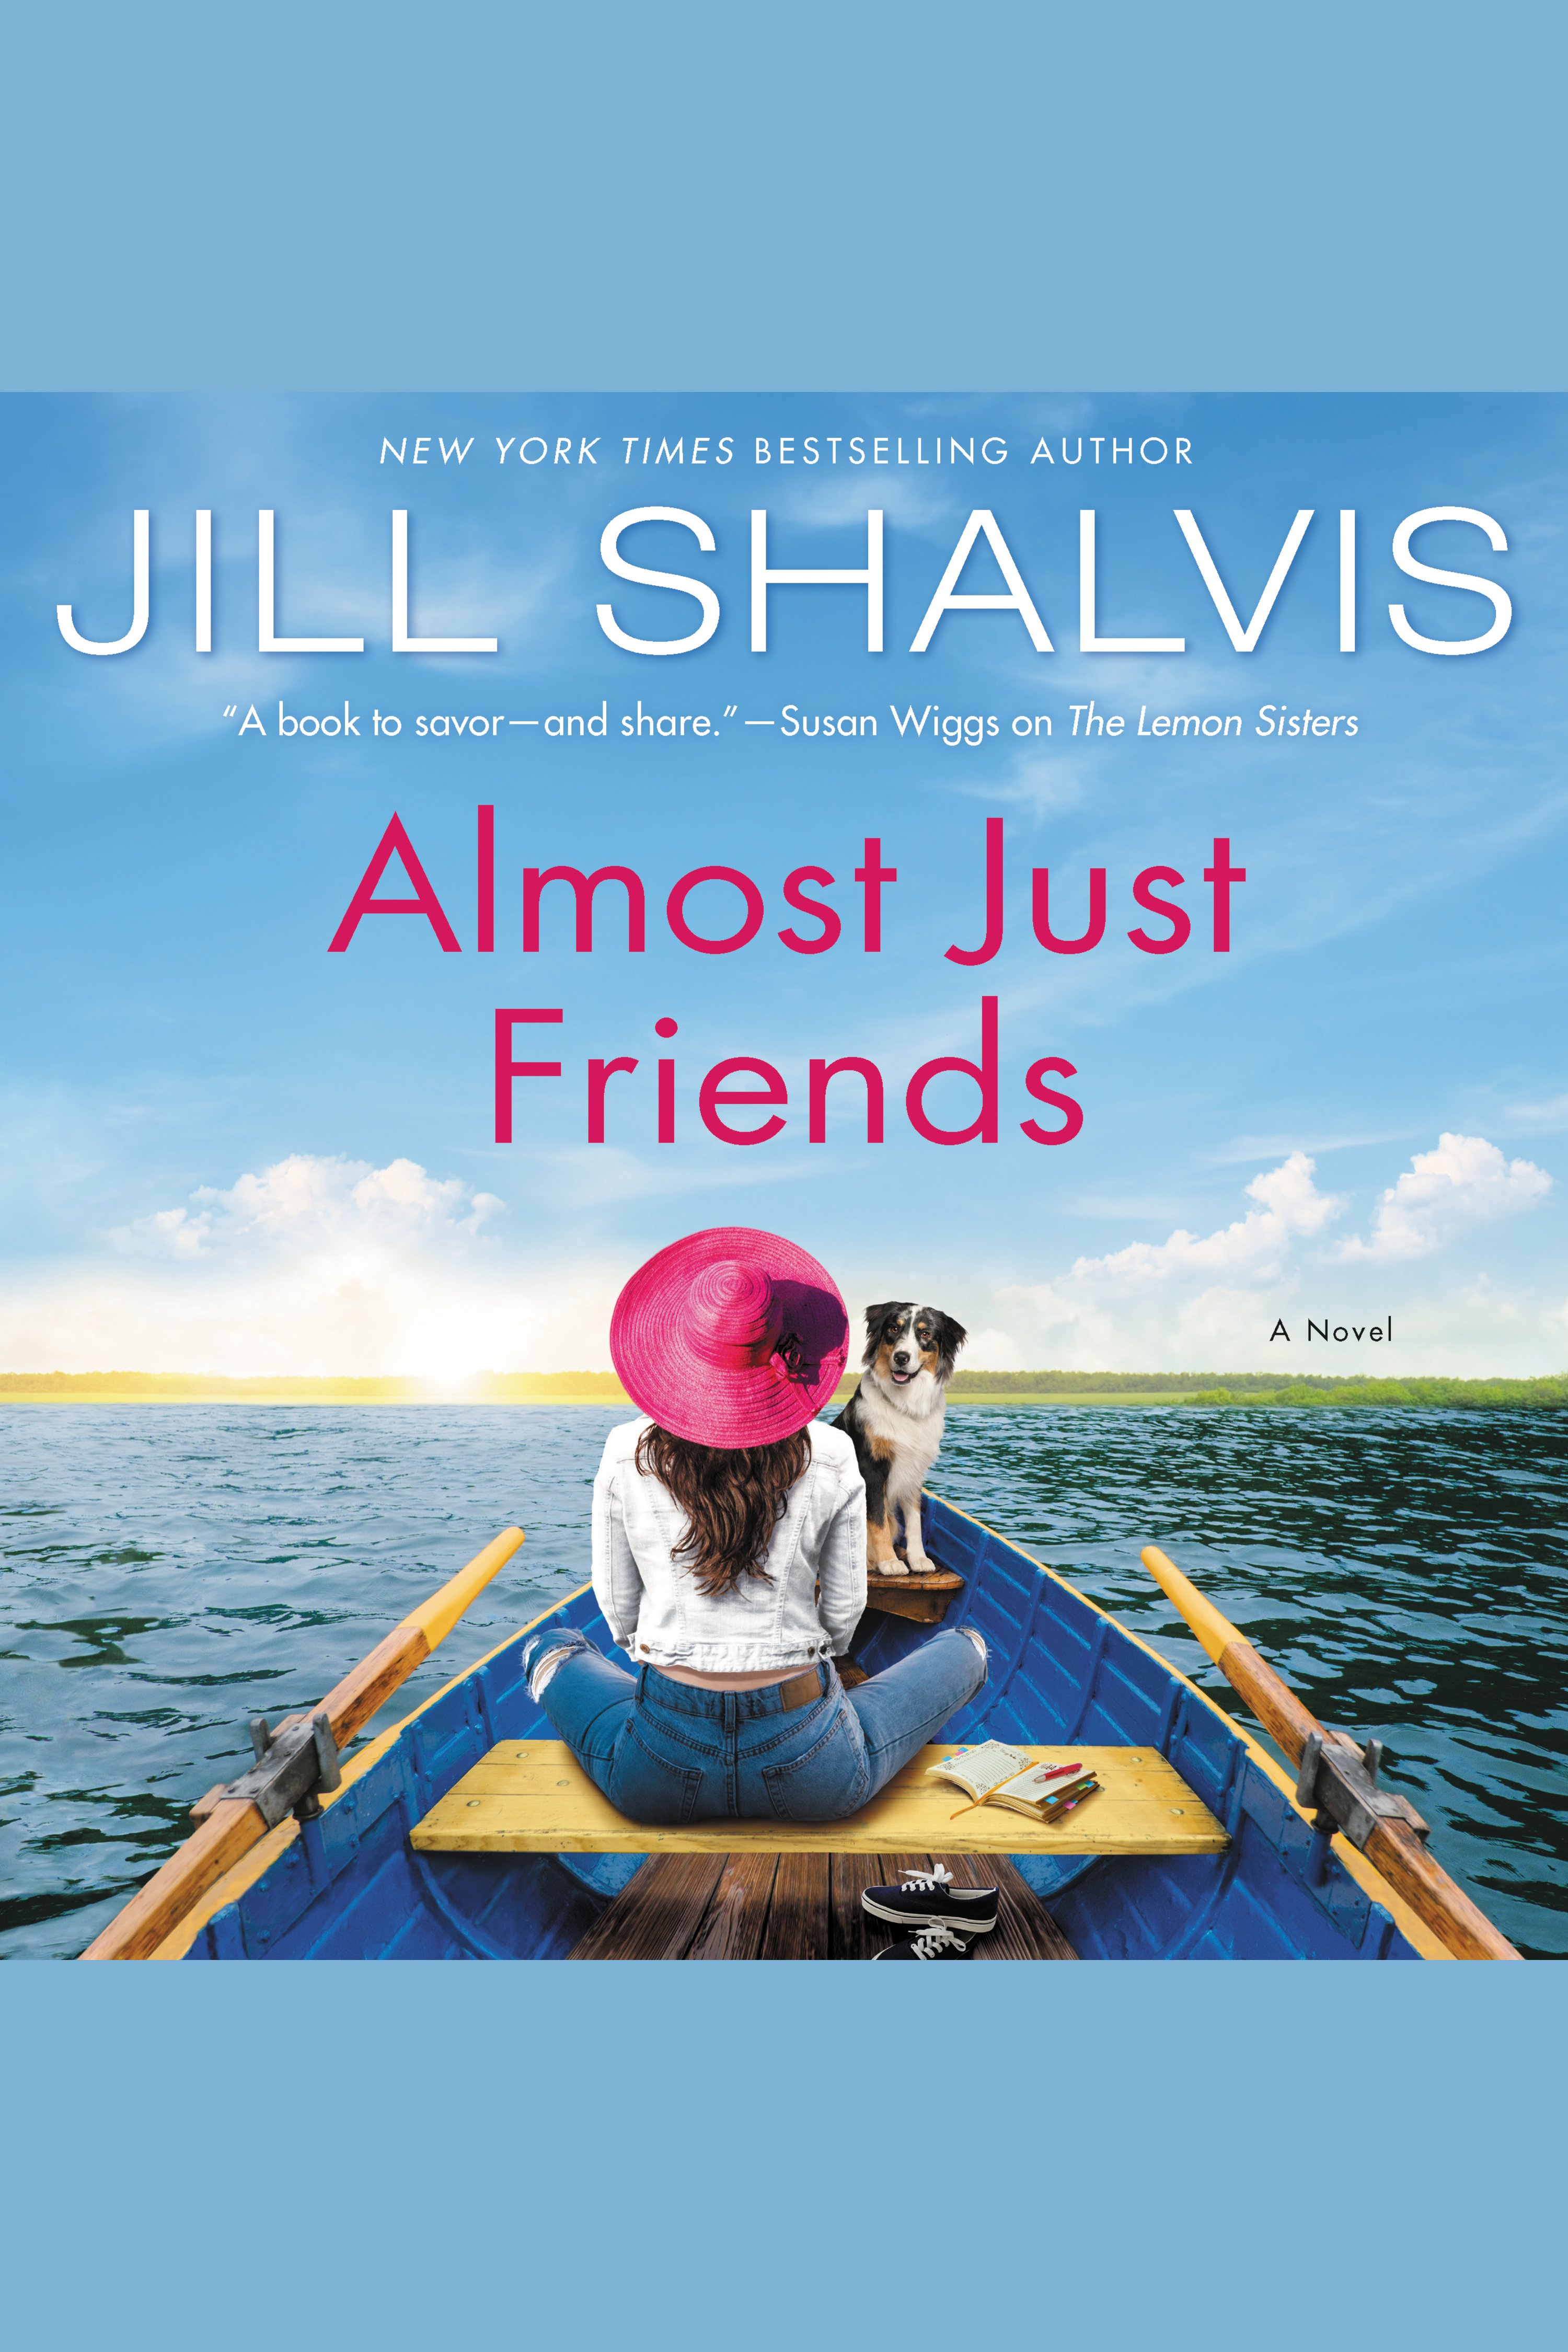 Almost just friends cover image